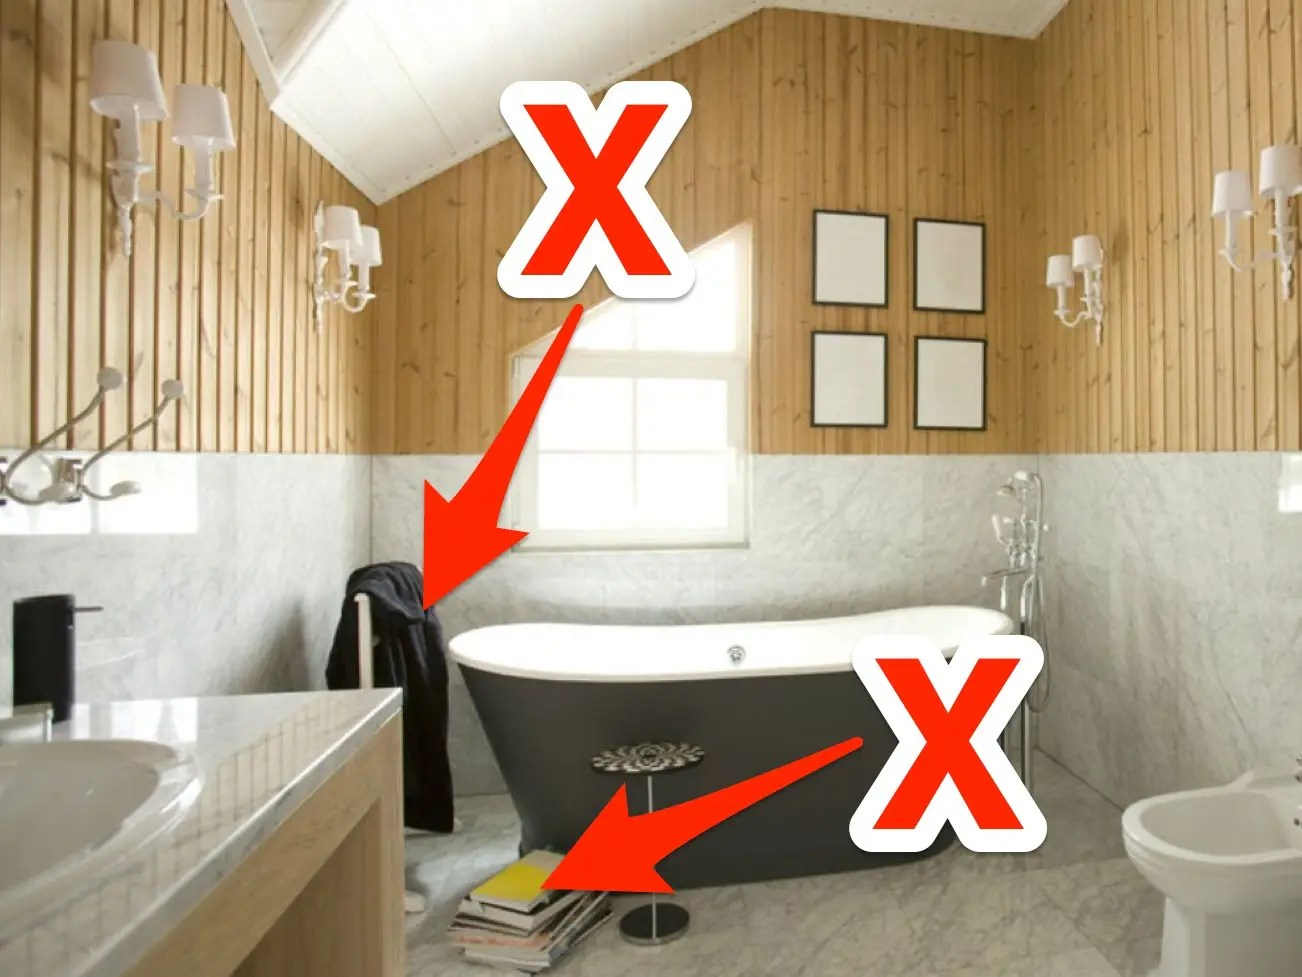 Bathroom Things You Should Get Rid Of According To Interior Designers Insider